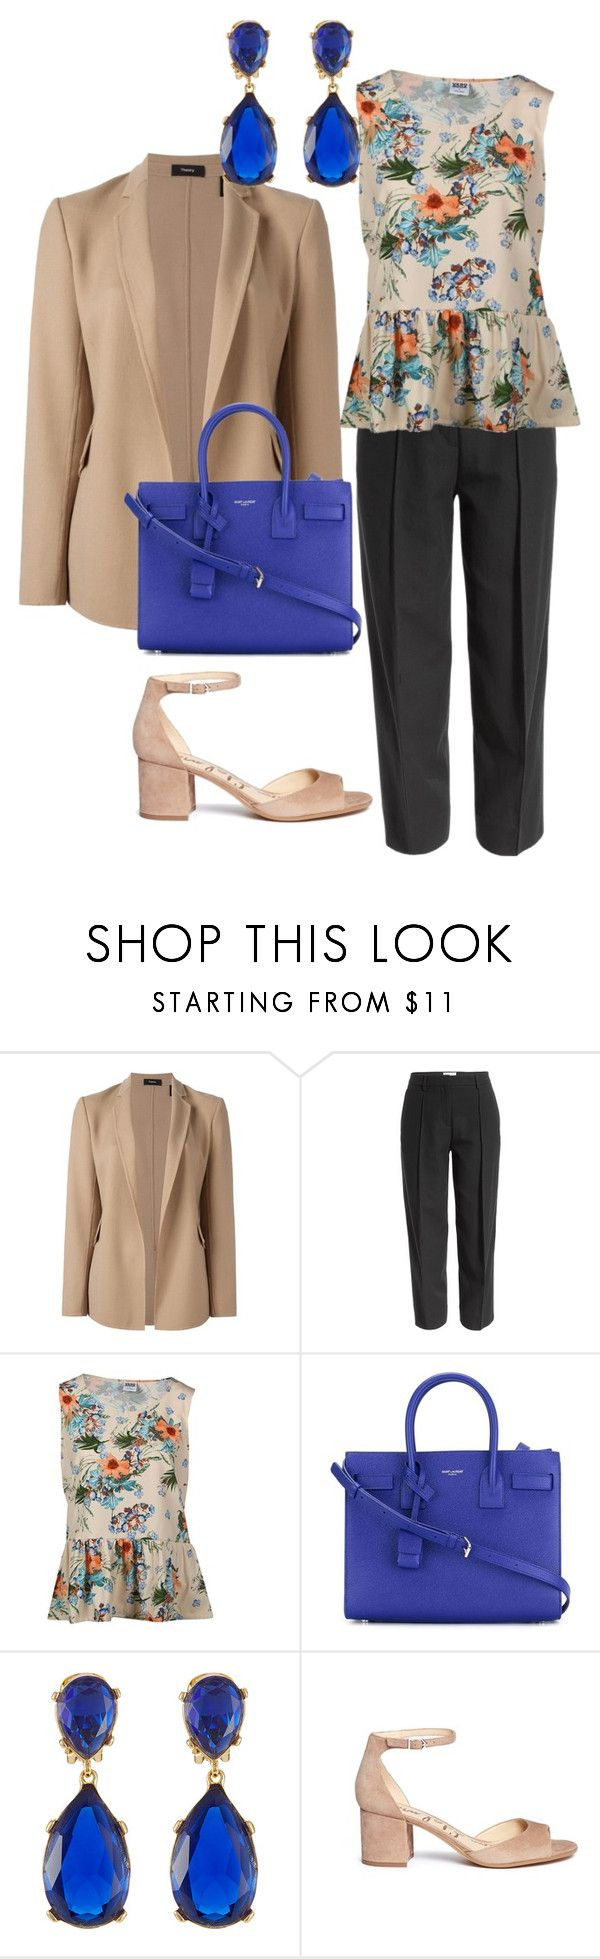 """""""Business casual"""" by yvonne-tyler ❤ liked on Polyvore featuring Theory, Maison Margiela, Vero Moda, Yves Saint Laurent, Kenneth Jay Lane and Sam Edelman"""